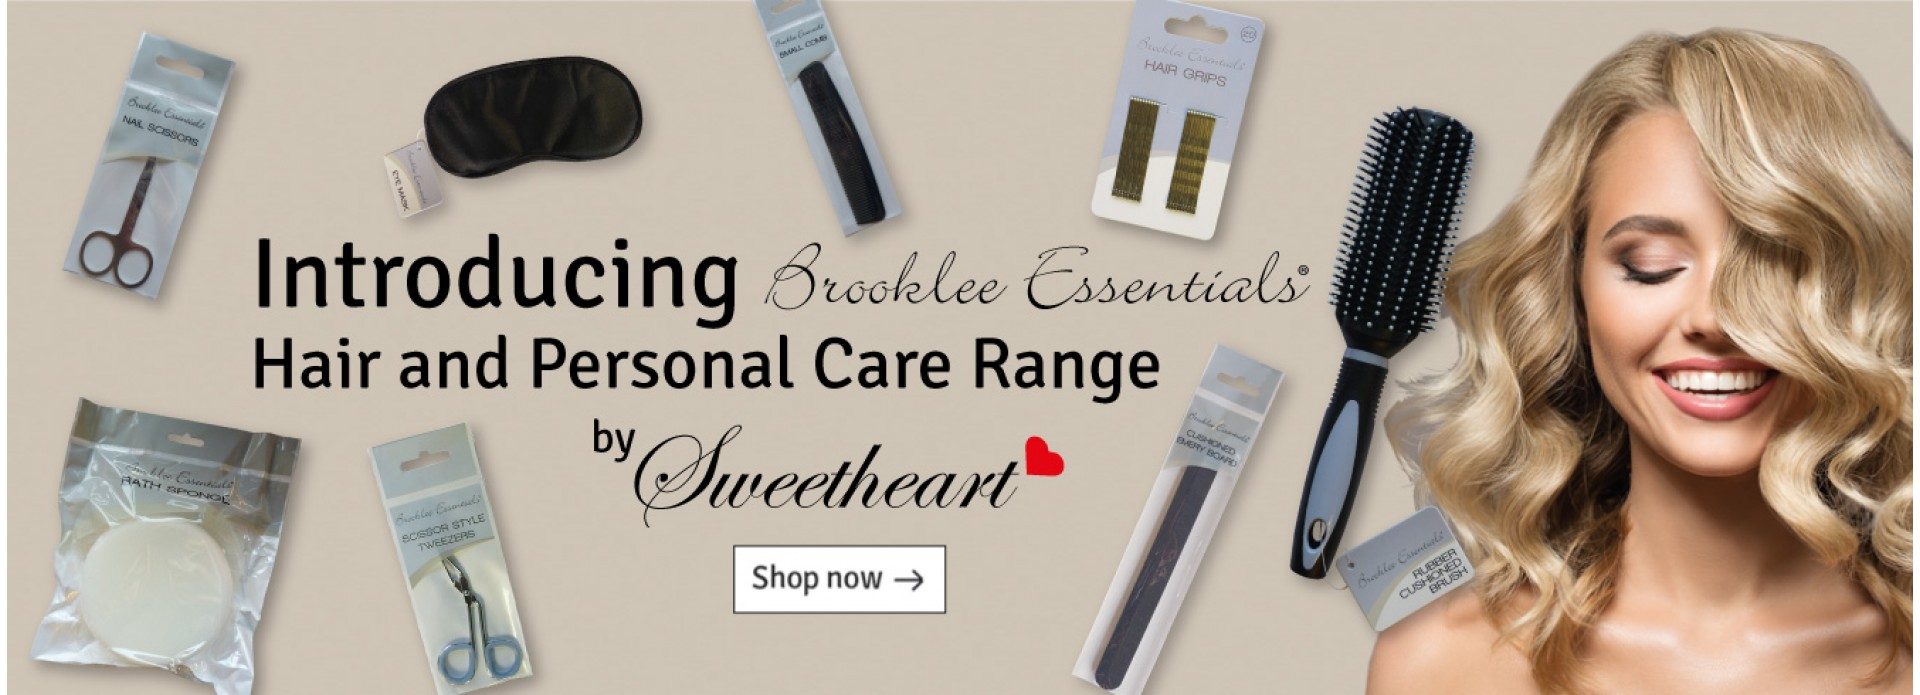 Hair and Personal Care